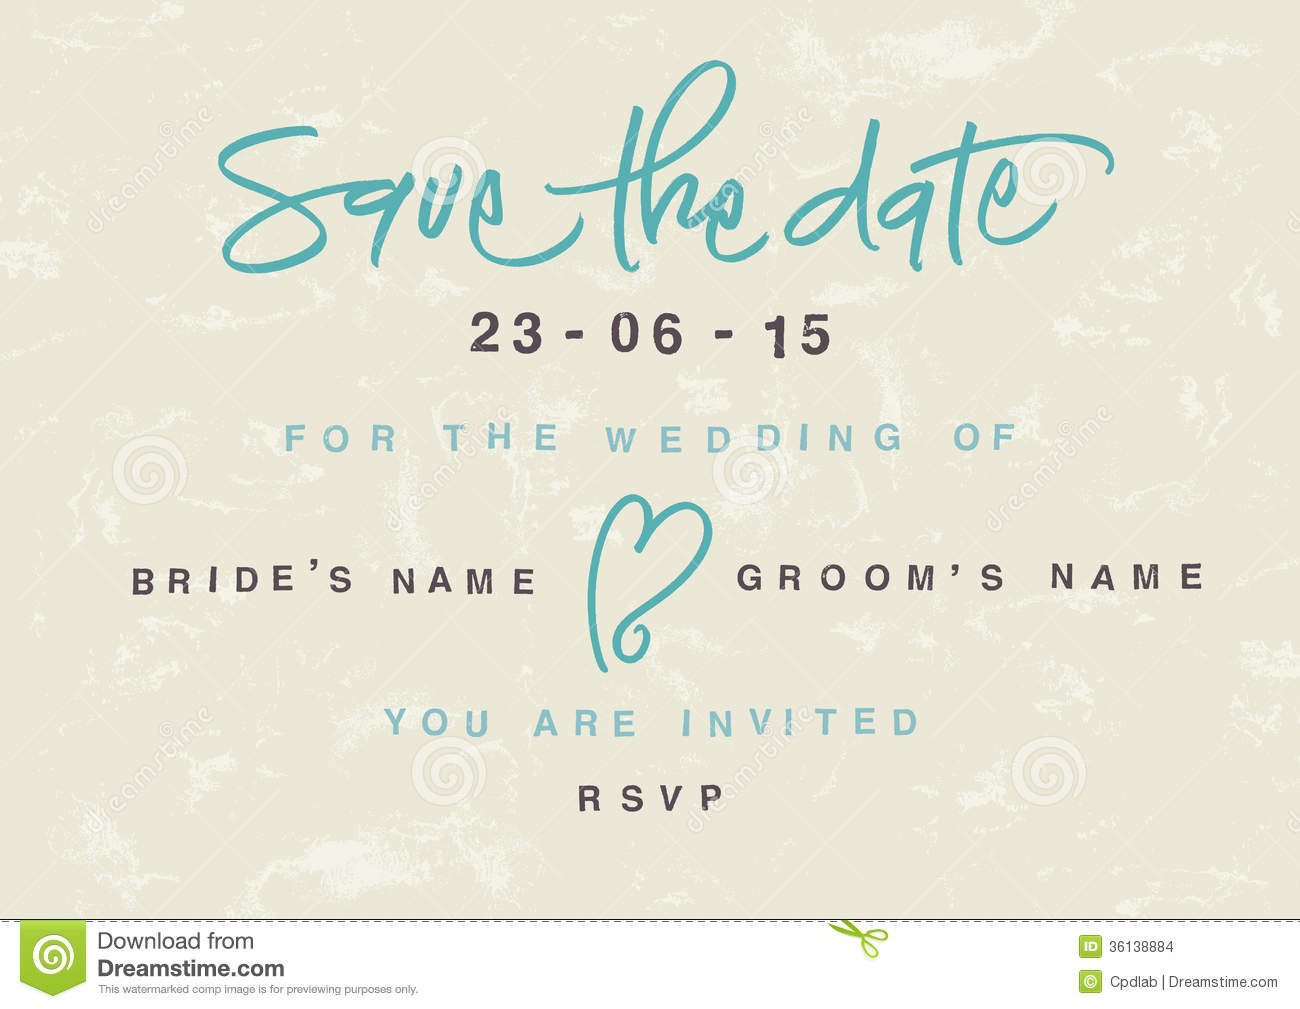 Save The Date Clipart - Clipart Kid